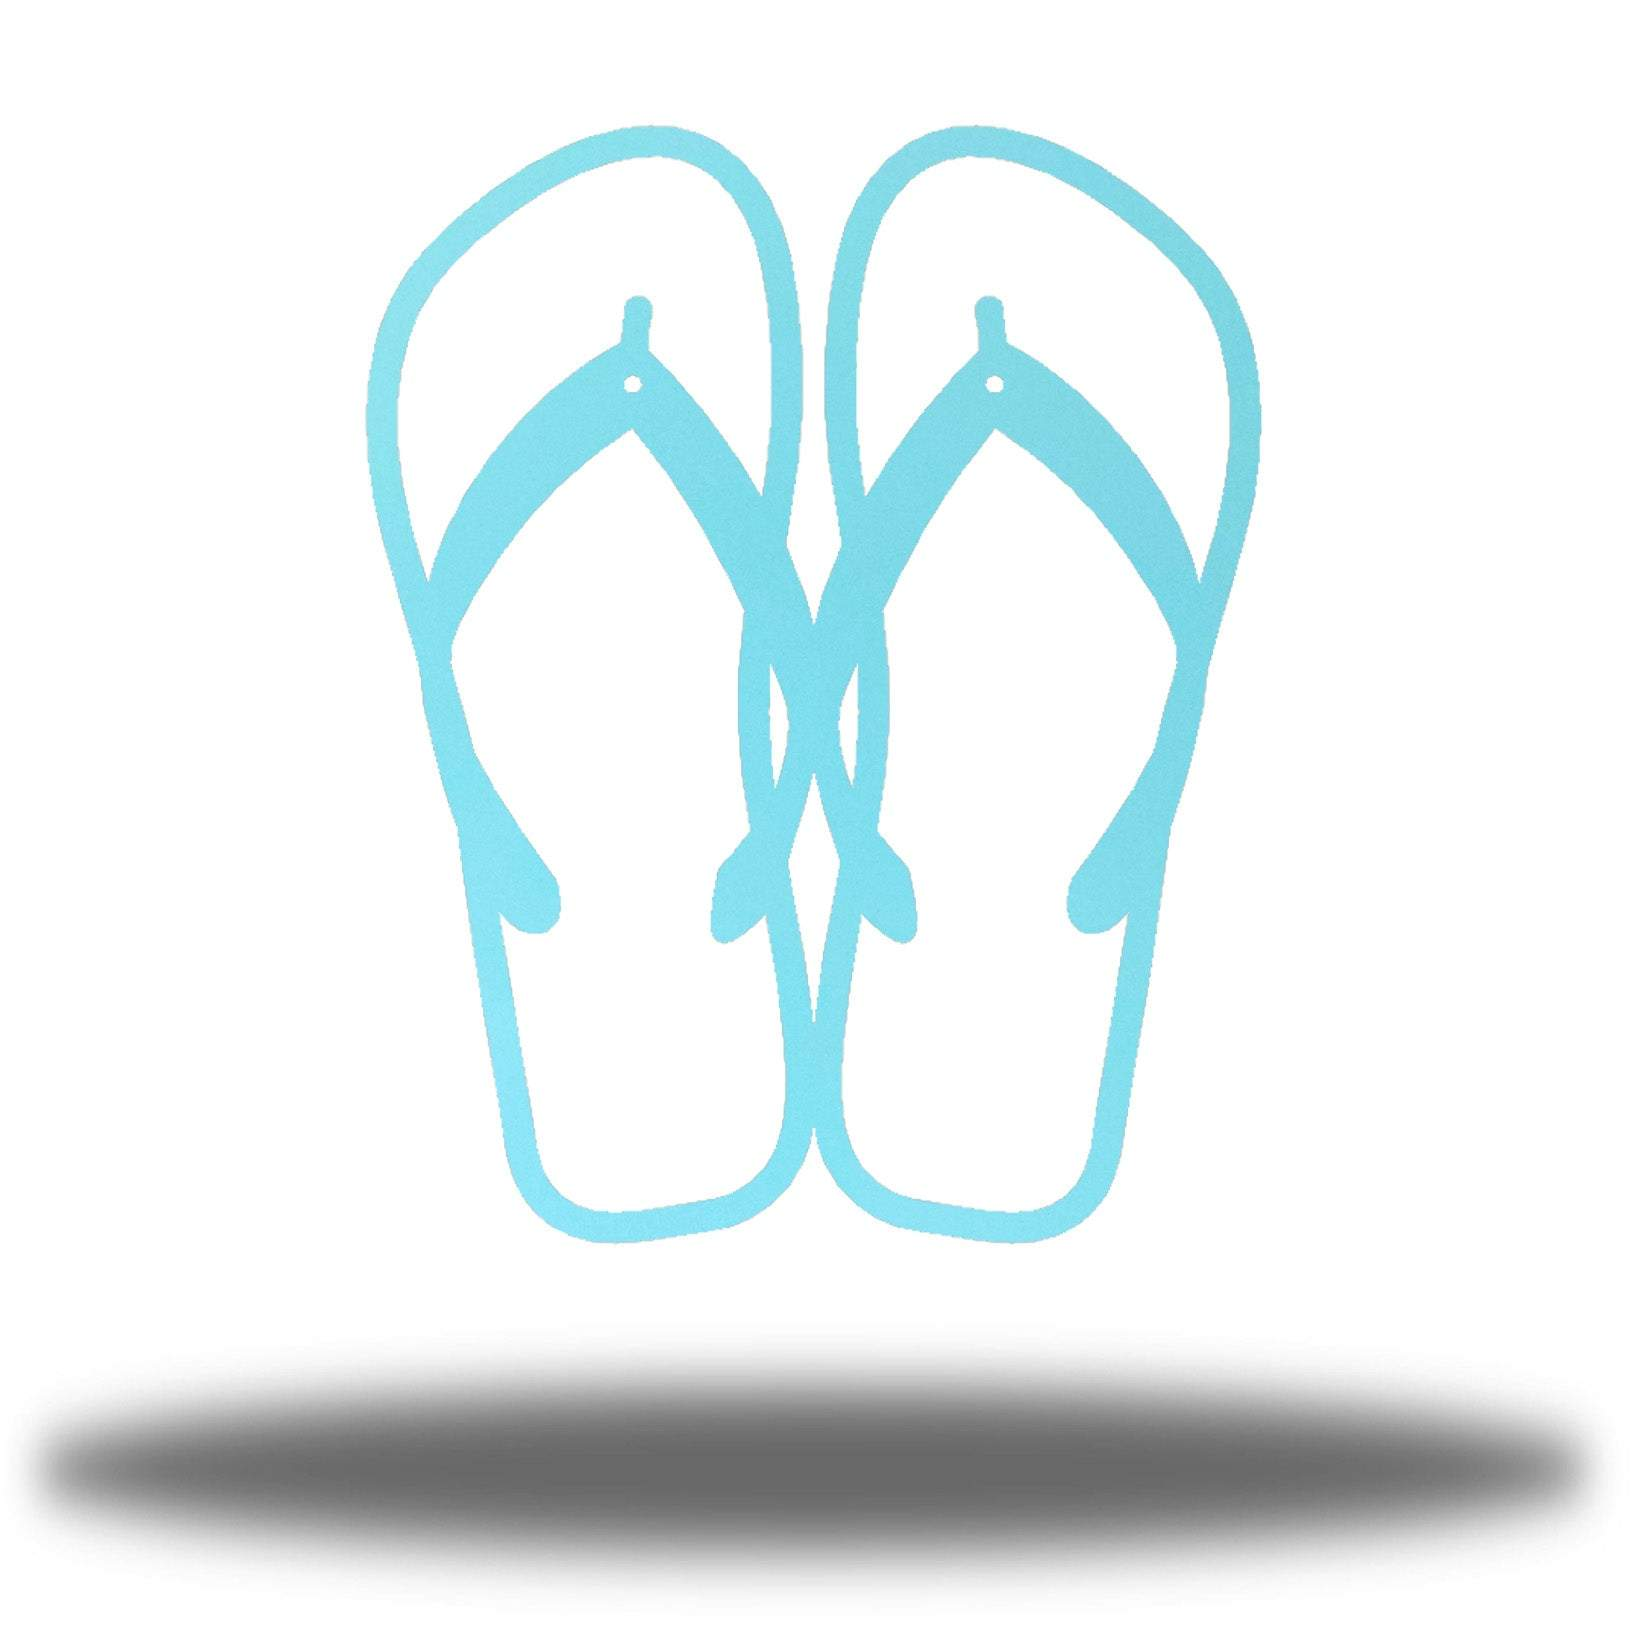 Light blue steel flip flops-shaped wall decor